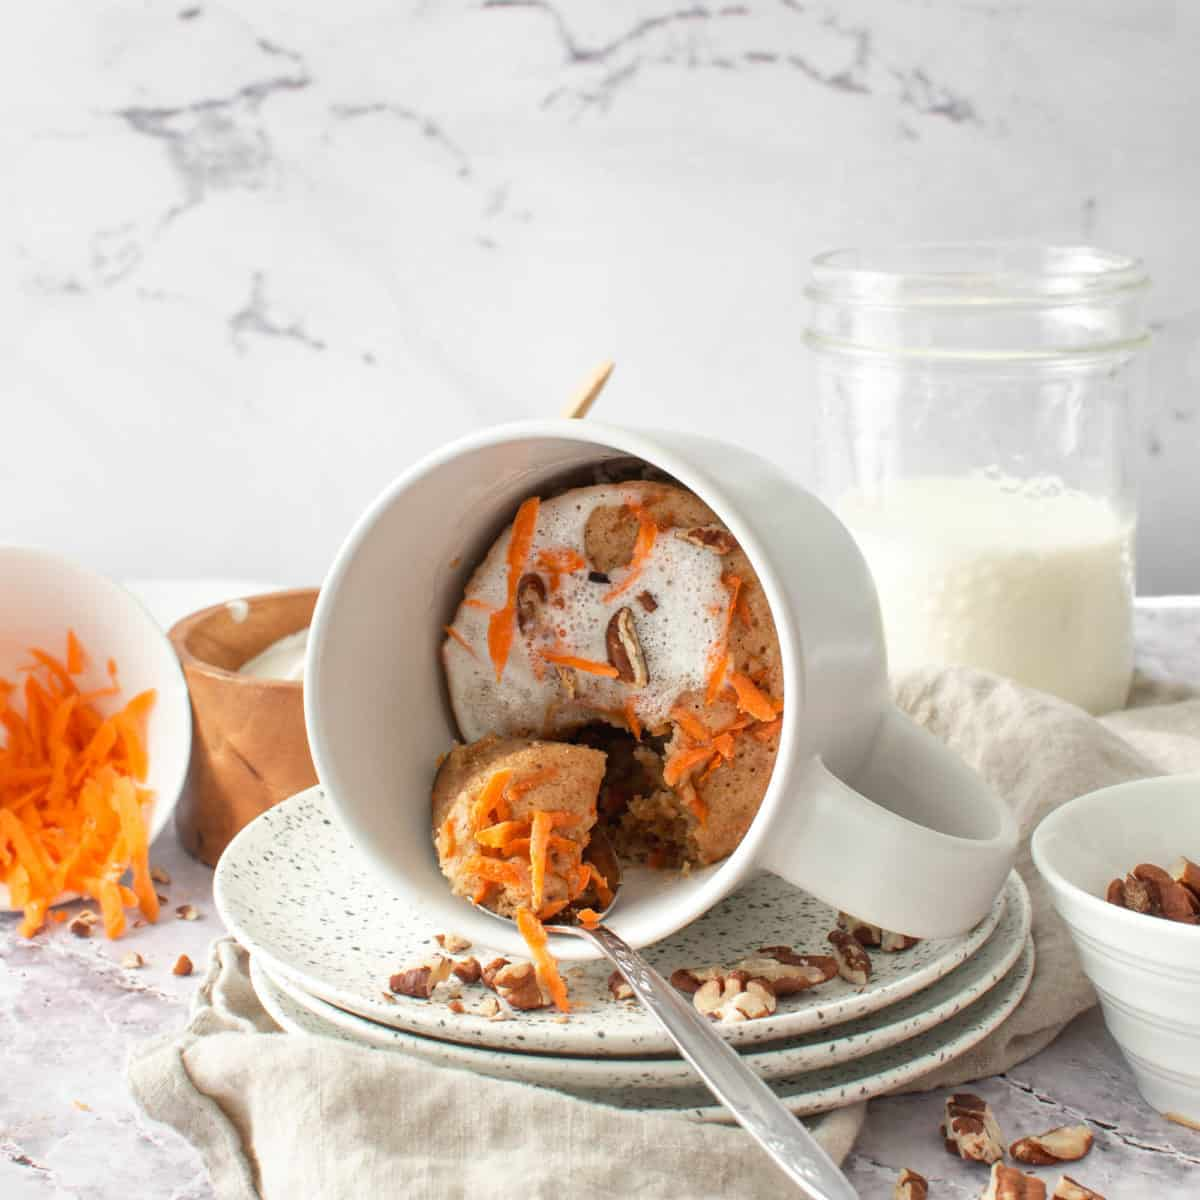 Carrot cake in a mug with a spoon.